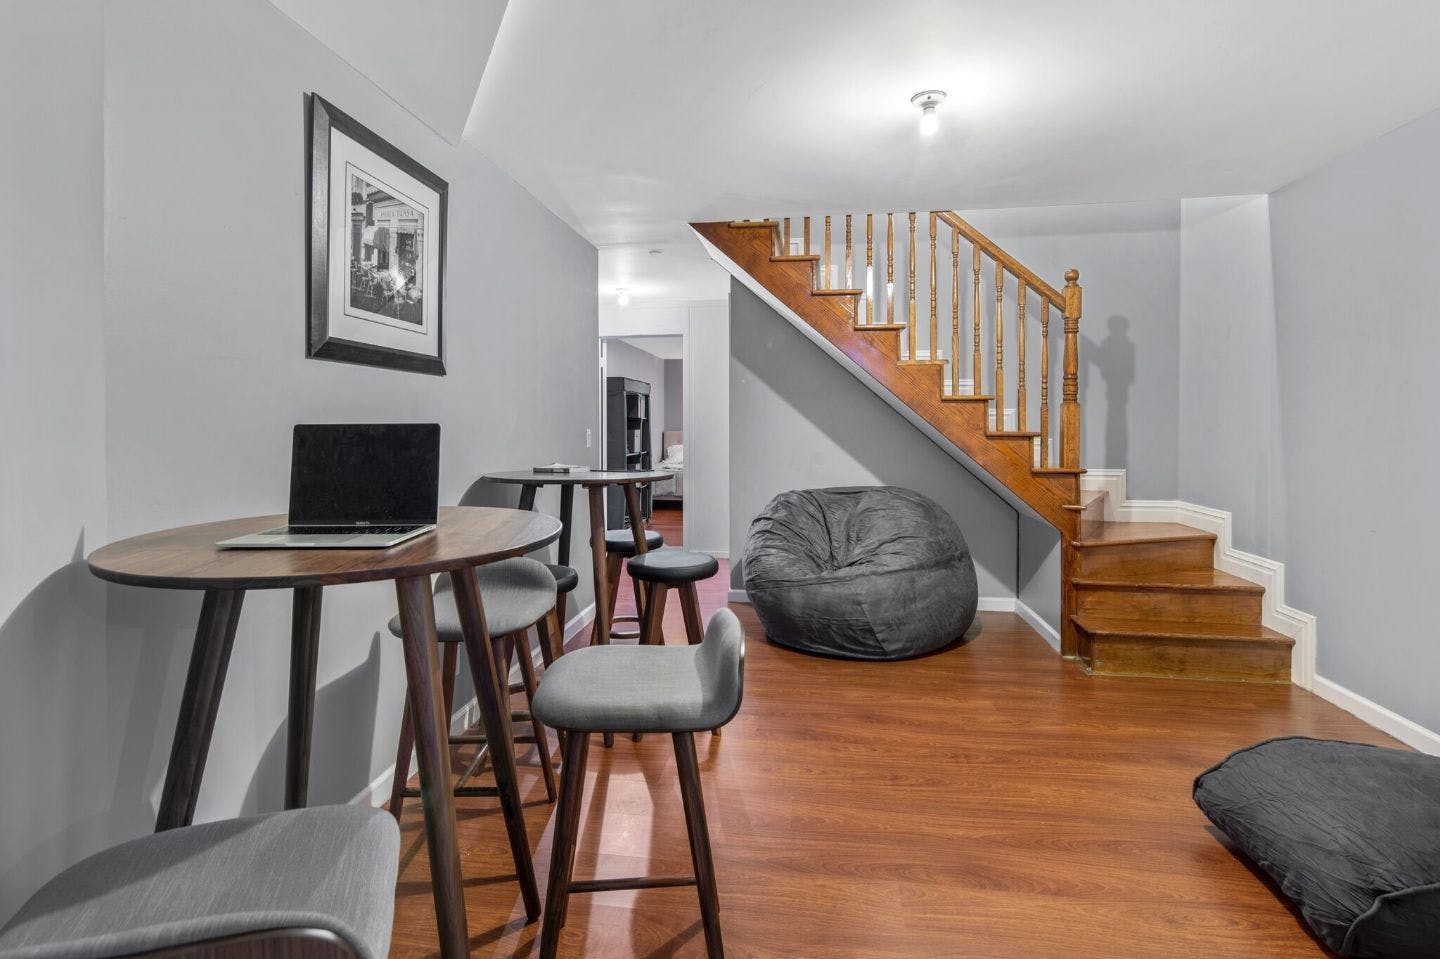 7 Residents | Kingsland Ave. - Greenpoint | Freshly Renovated House - Incl. Coworking